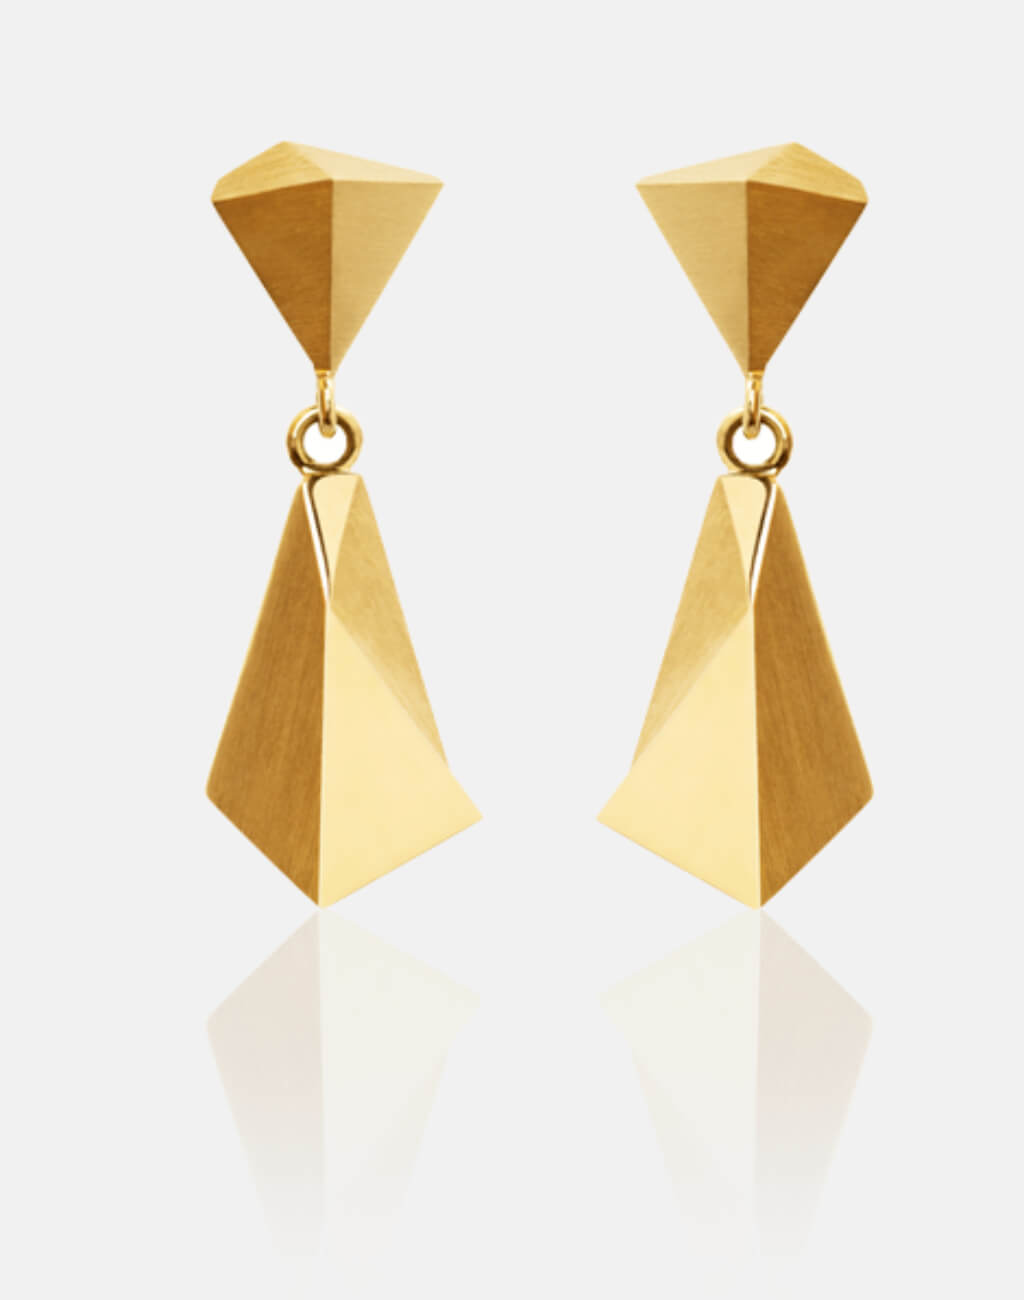 Stealth | Ohrringe, Ohrhänger 750/- Gelbgold | earrings 18kt yellow gold | SYNO-Schmuck.com